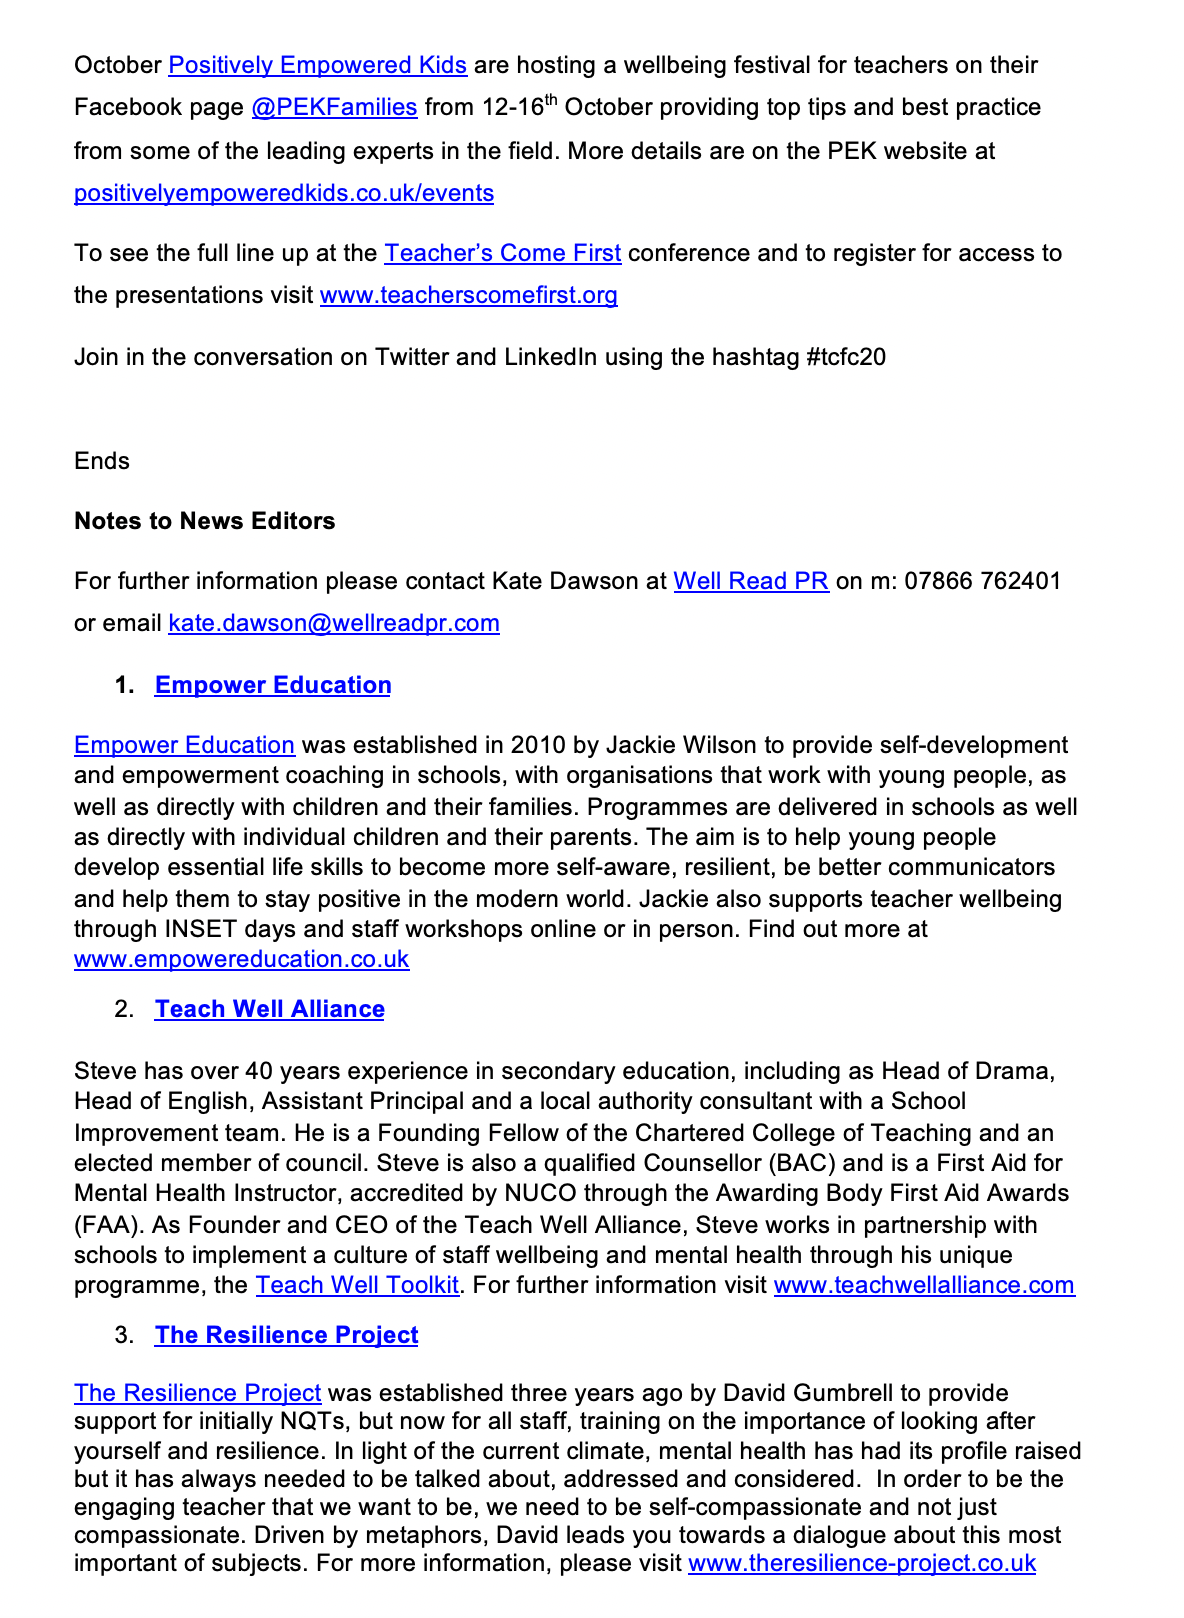 Press Release Teachers Come First Conference with Links to Websites 19th October 2020